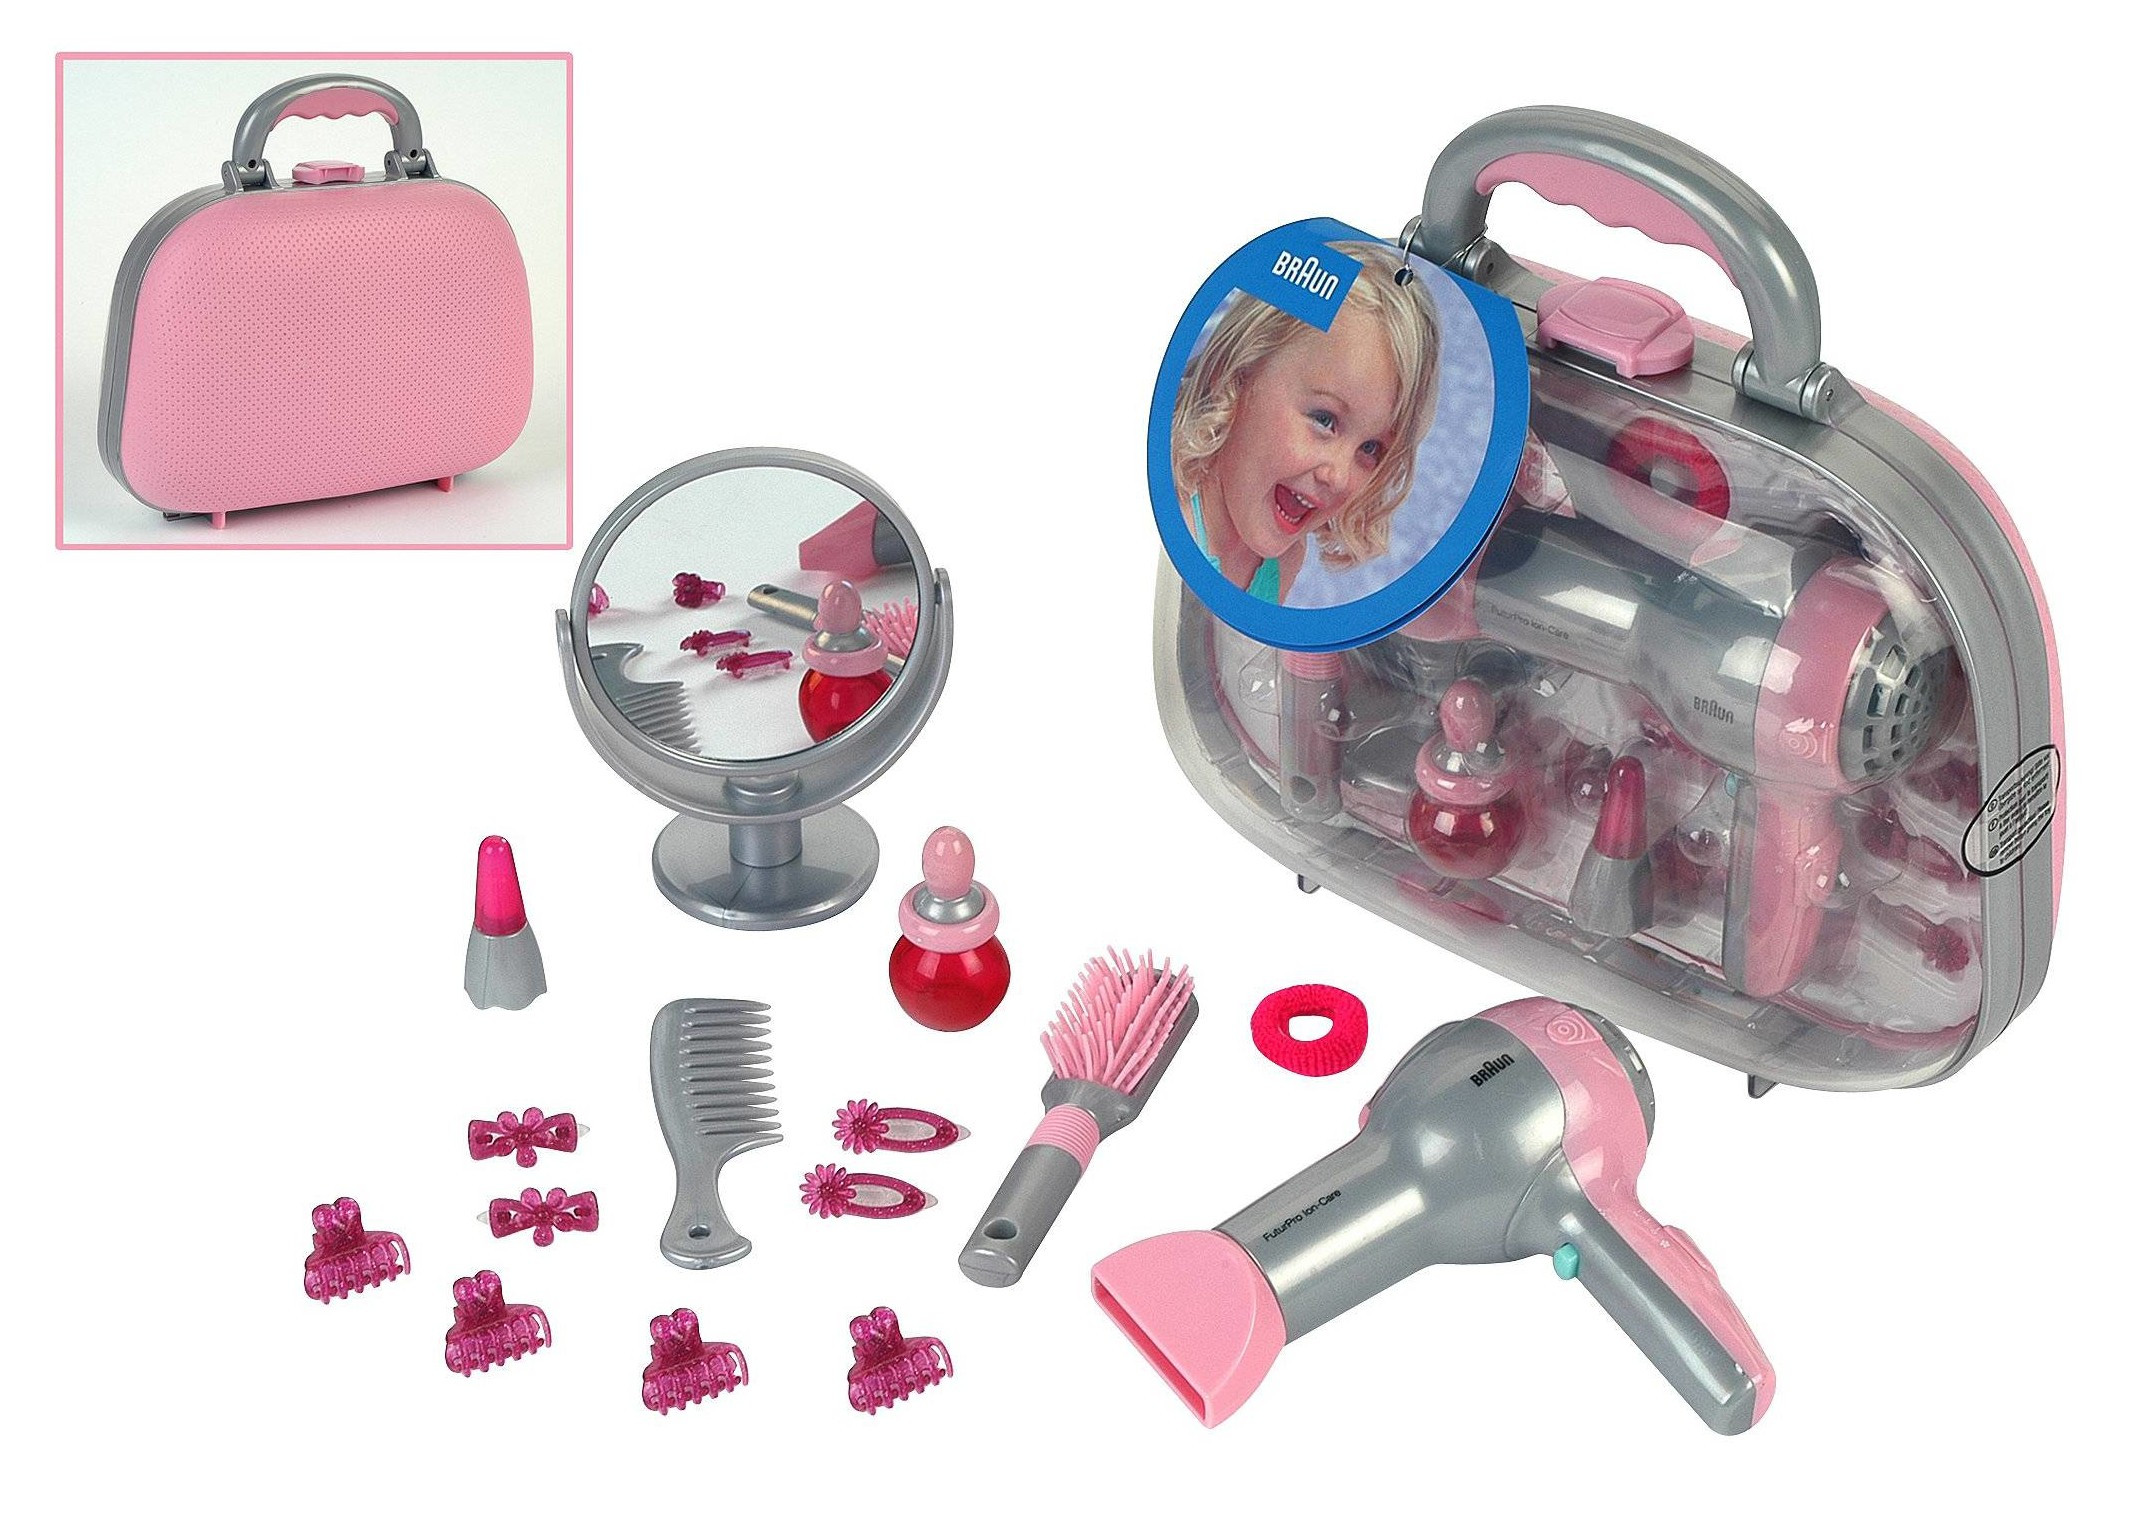 Kids Hair Dryers  Toy Hair Dryer That Blows Air Battery Operated With Sounds